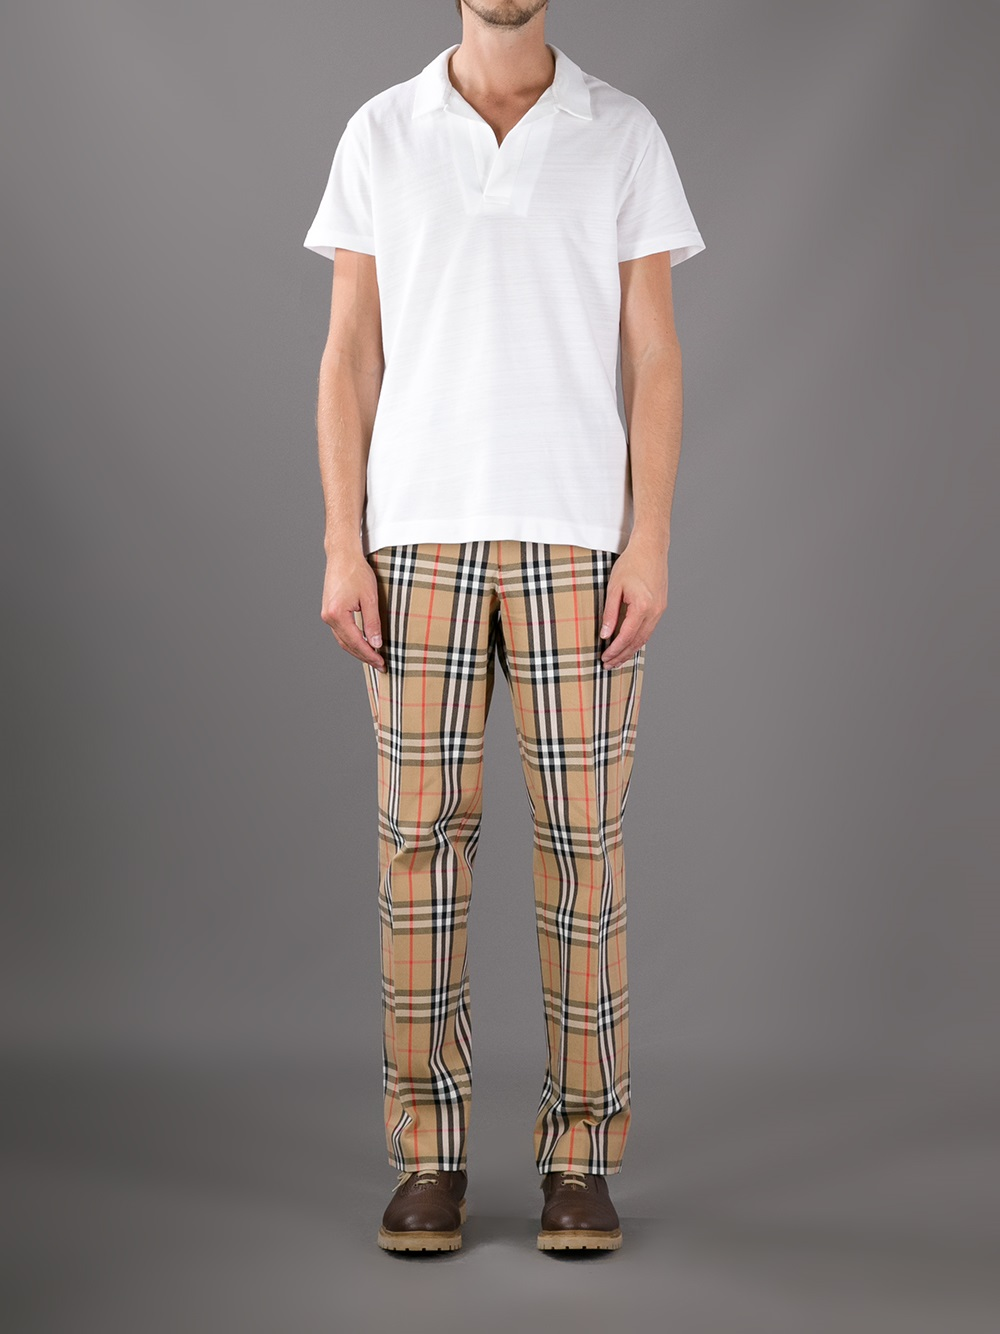 Burberry Haymarket Check Trouser In Natural For Men Lyst